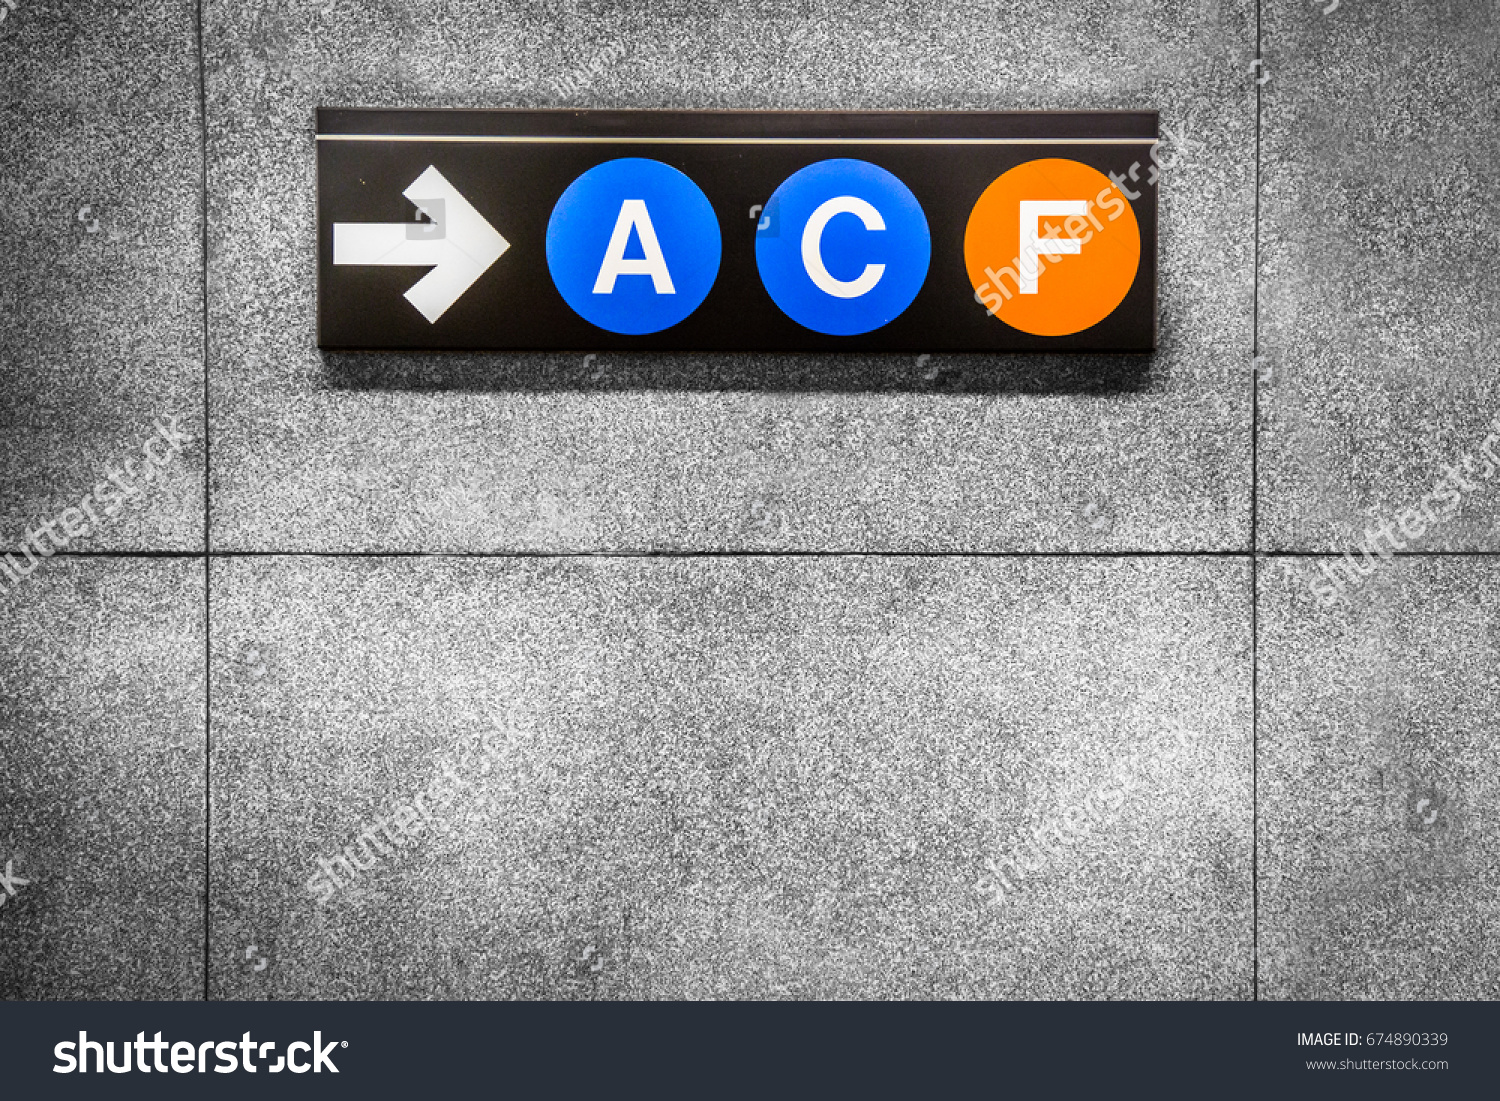 Sign new york city subway circle stock photo 674890339 shutterstock sign for new york city subway with circle letters on interior wall biocorpaavc Gallery